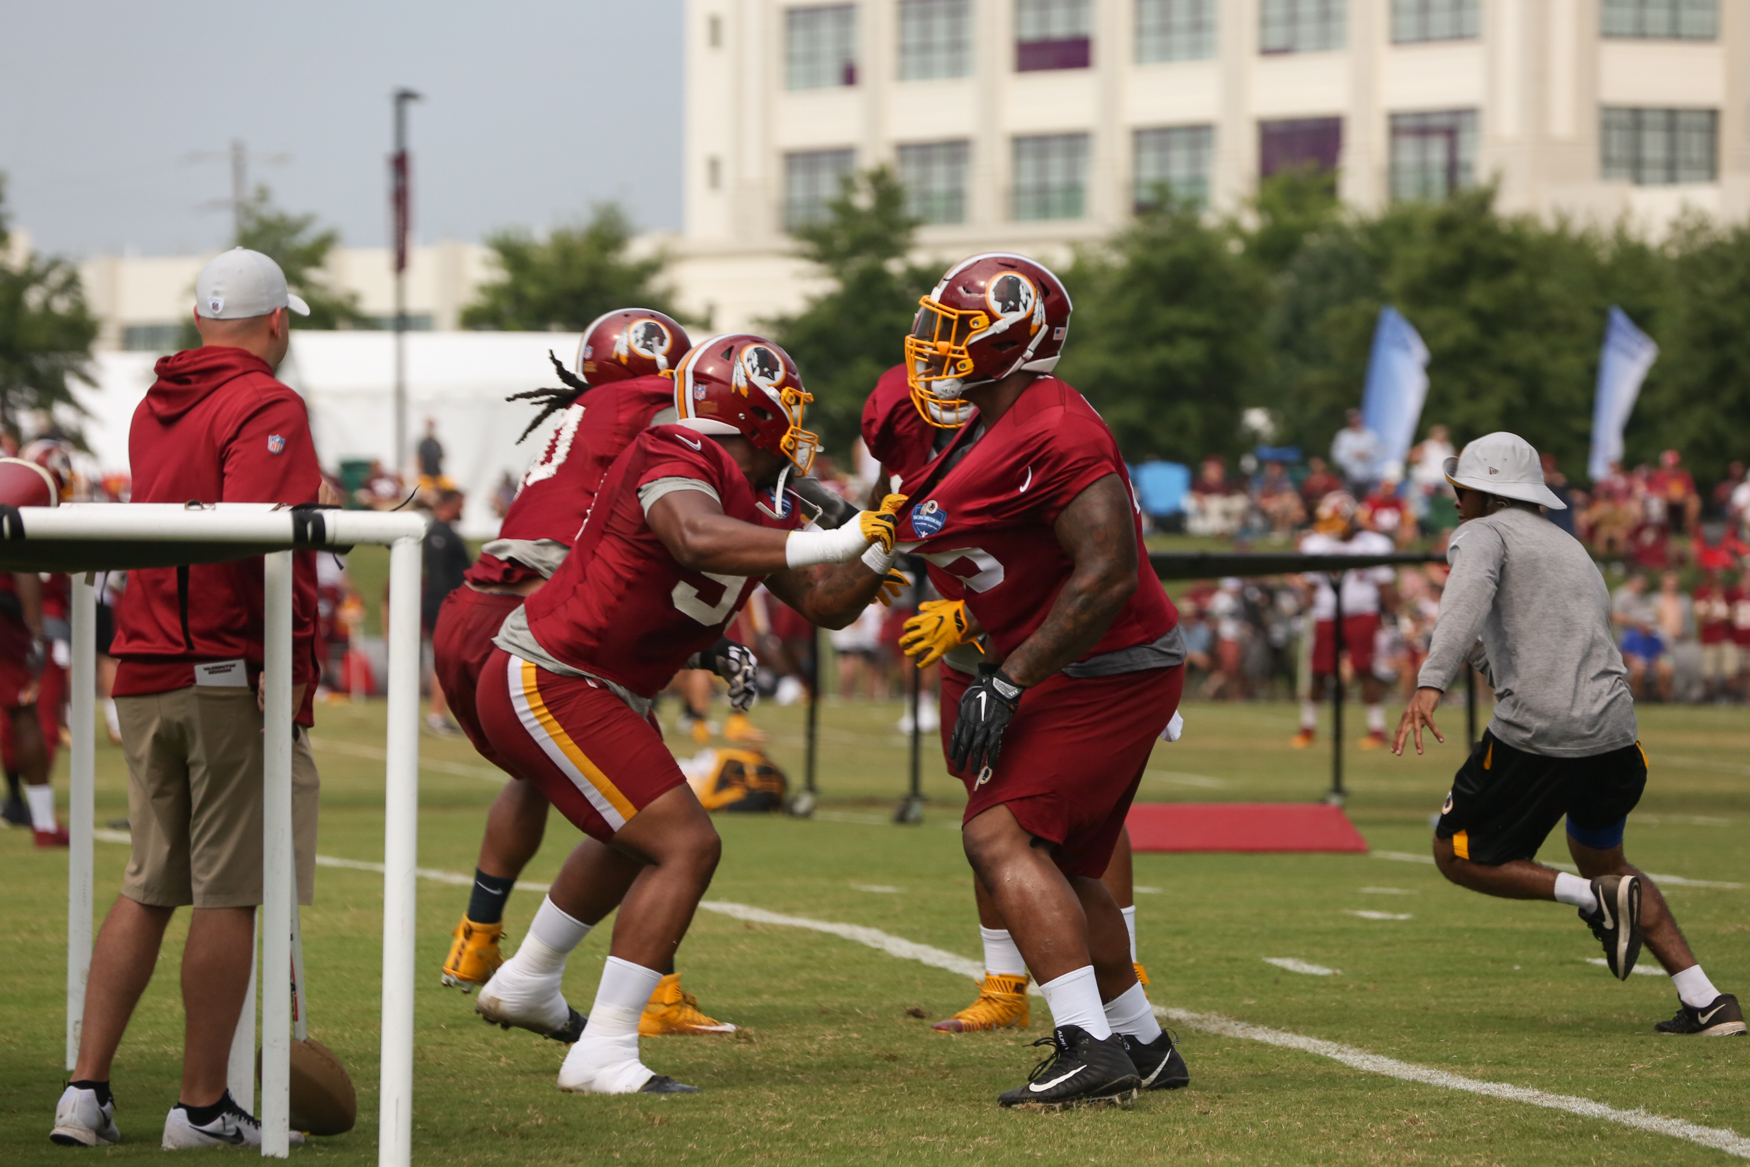 Spirits were high as fans cheered on the Washington Redskins and their recruits in Richmond, Virginia, today for the second day of training camp. Parts of the camp are open to the public, meaning fans flocked to watch the players stretch out, run drills and work out plays for the coming season. (Amanda Andrade-Rhoades/DC Refined)